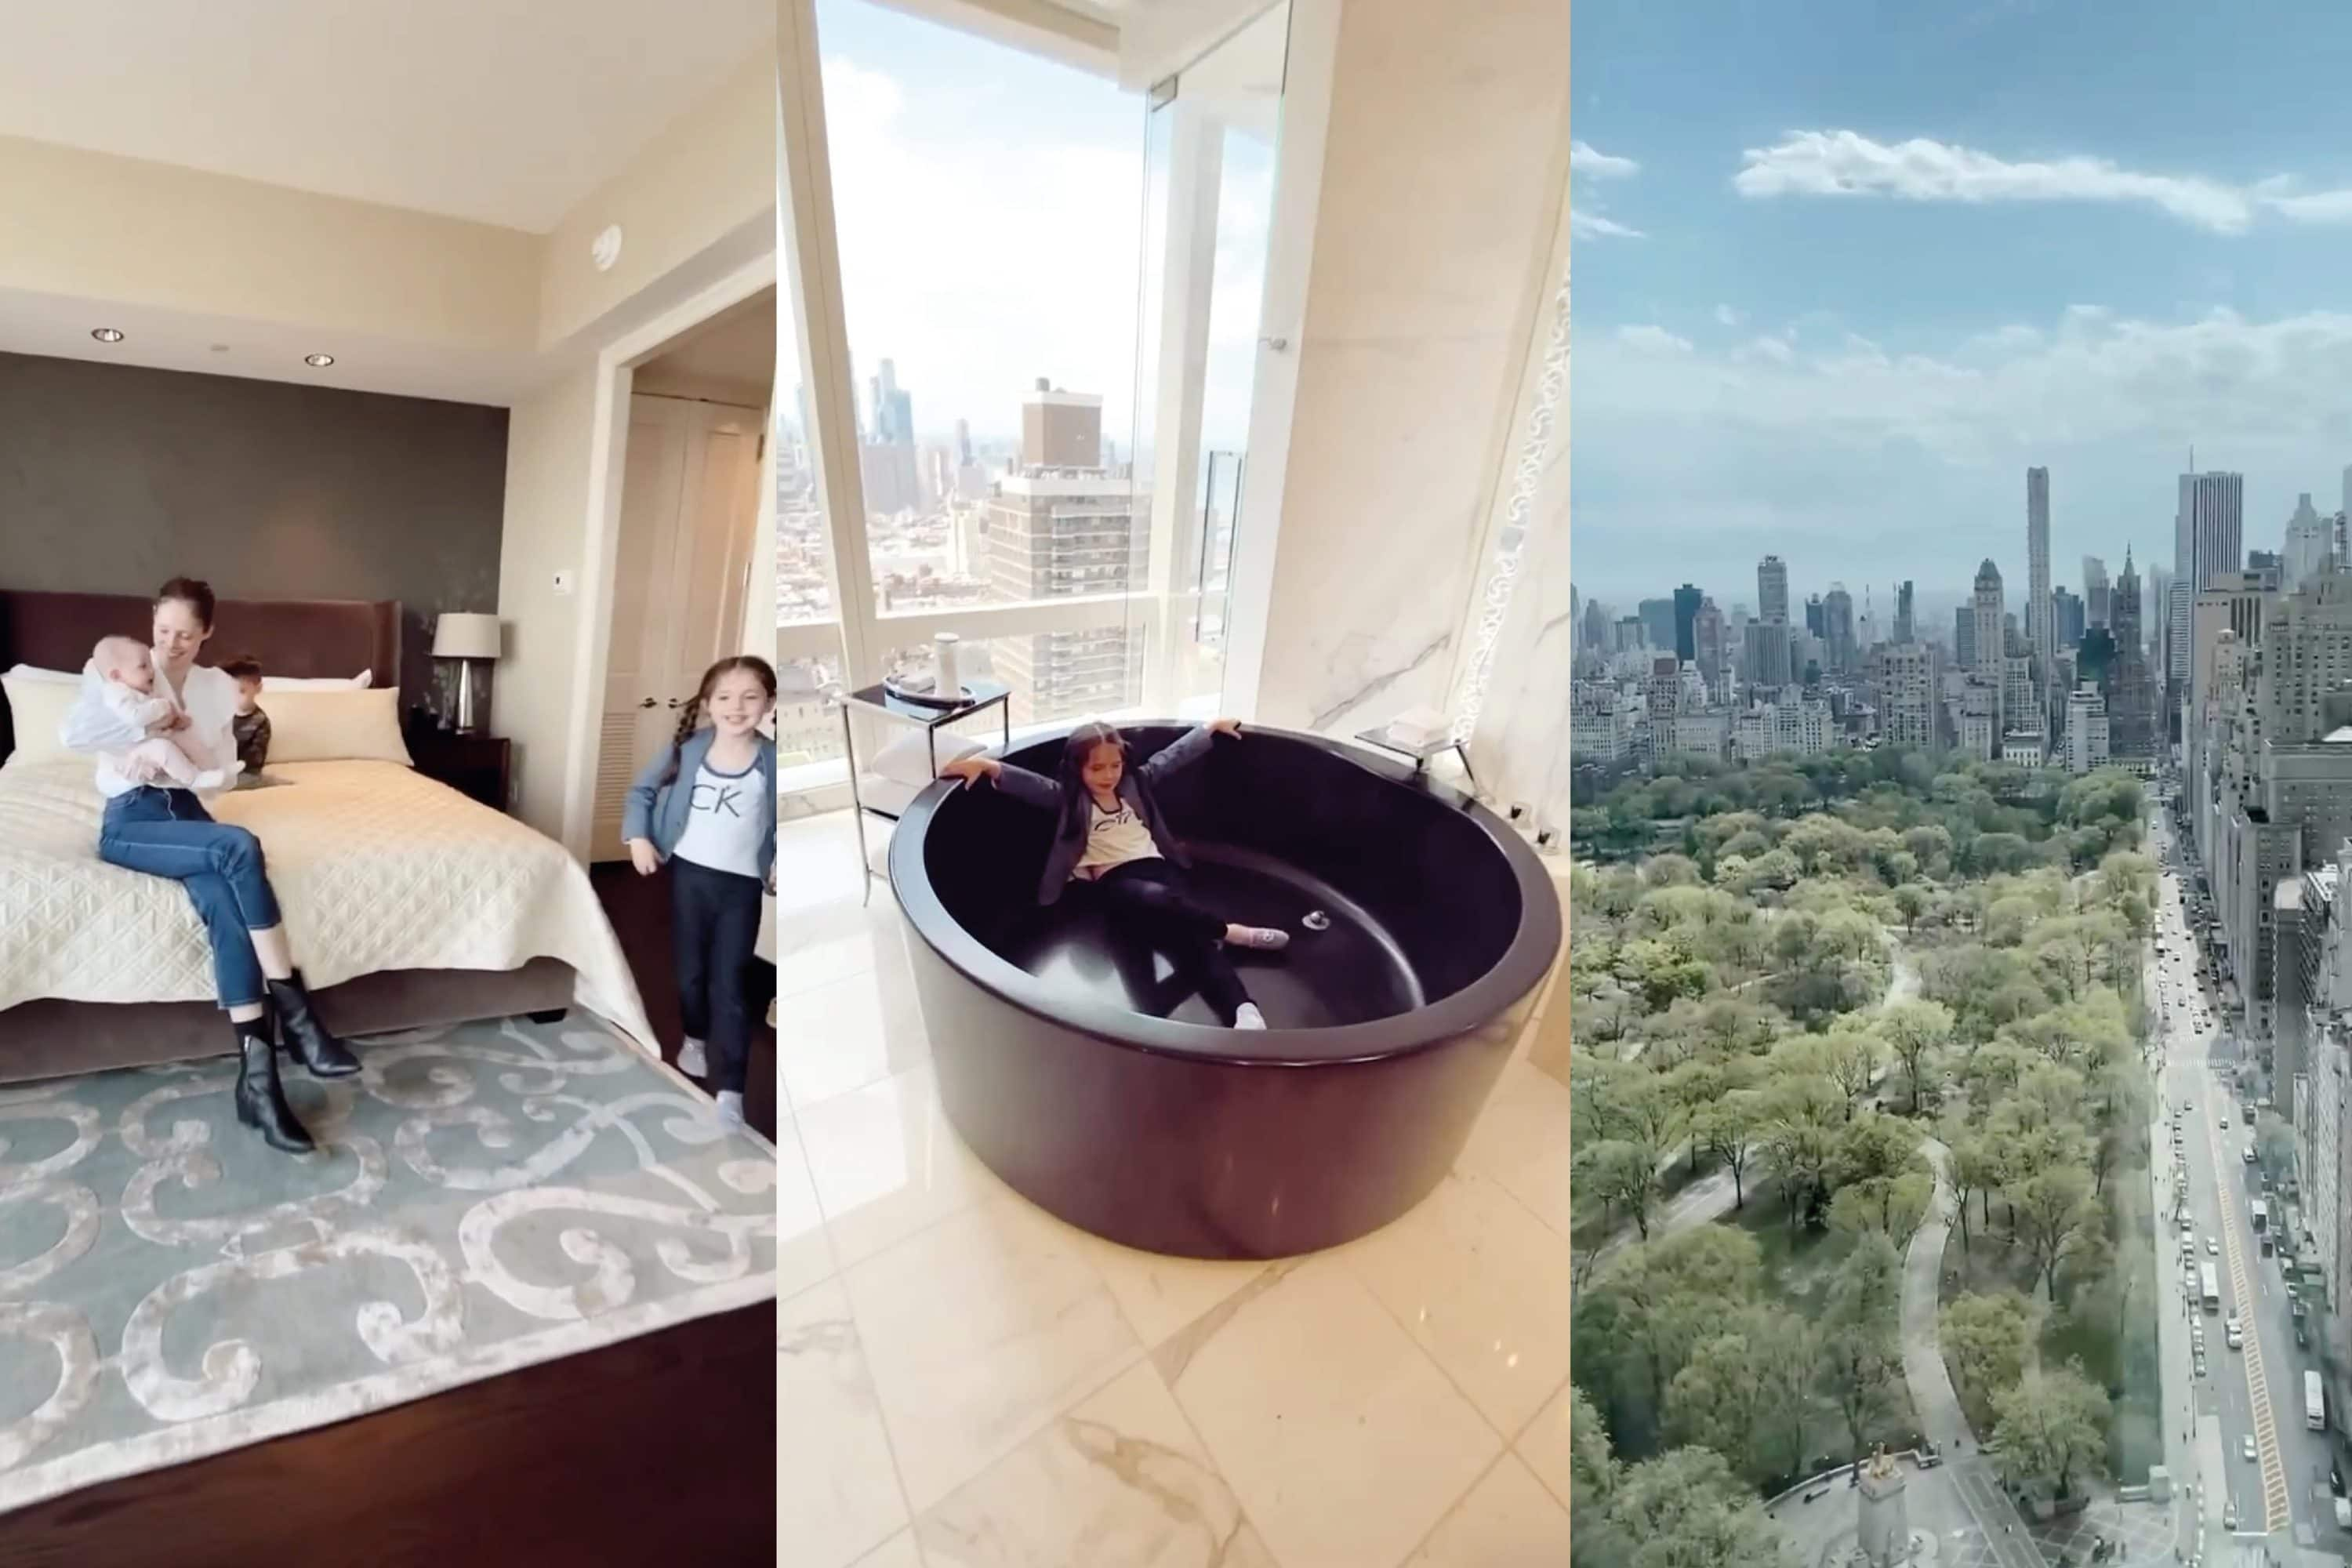 Bedroom, bathroom and view from Suite 5000